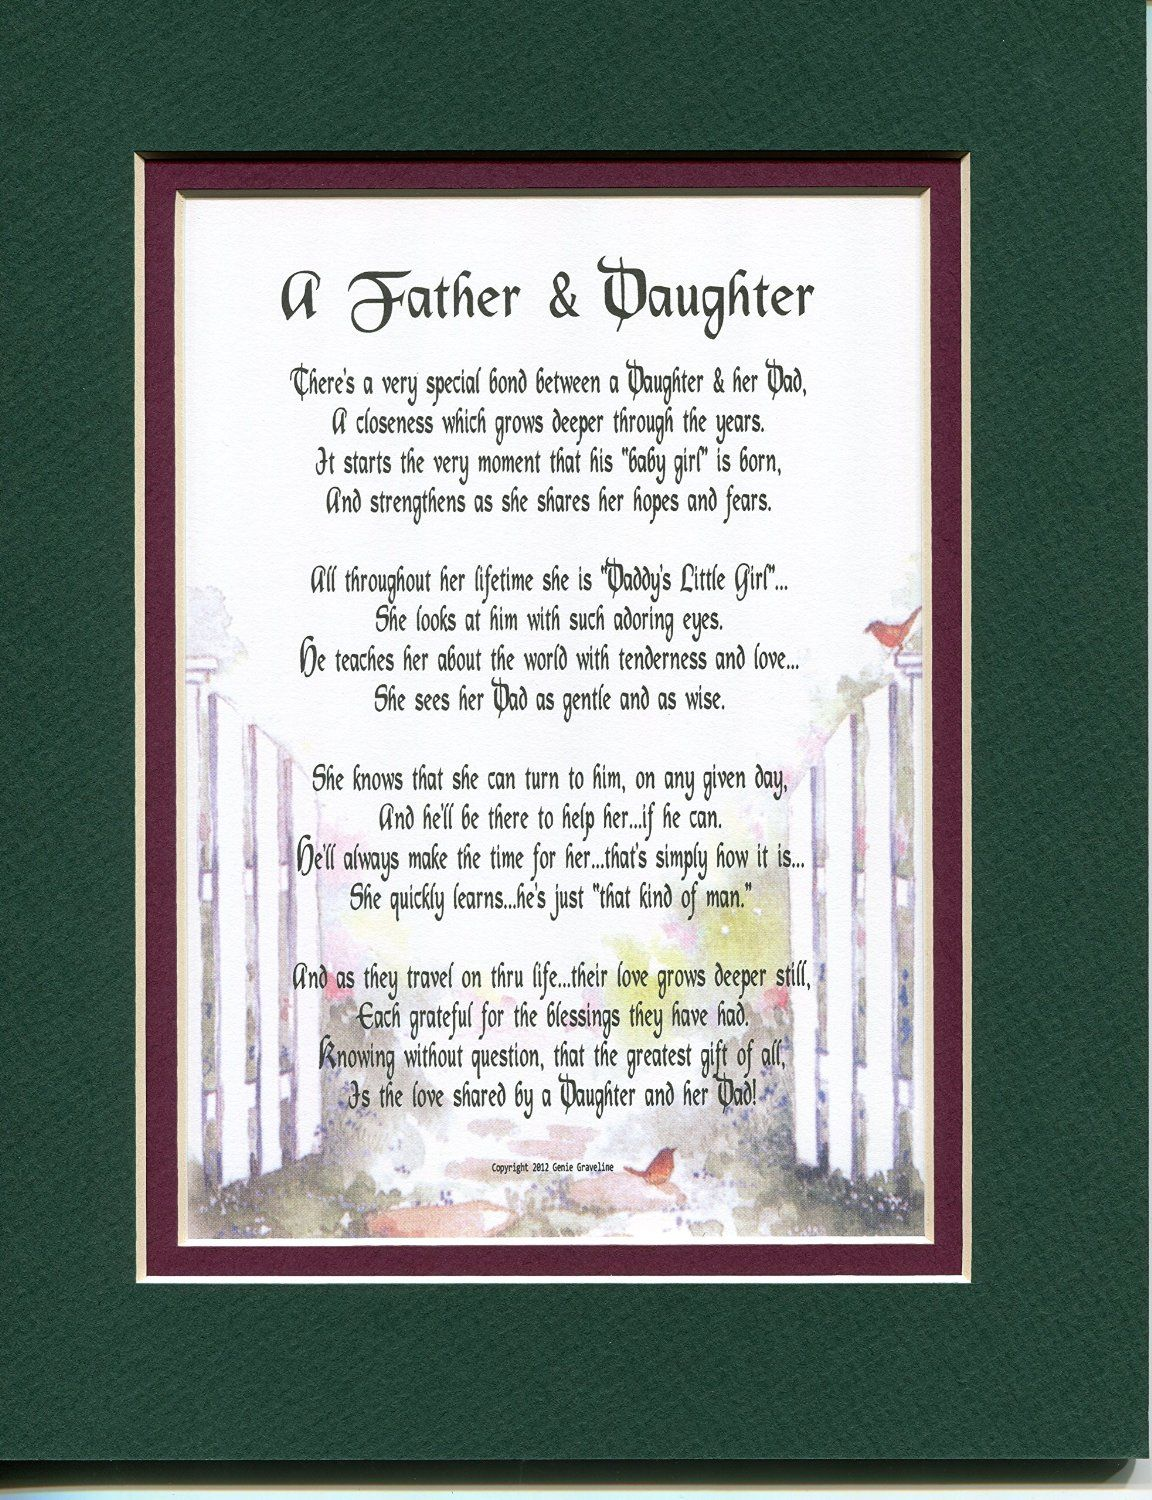 father and daughter relationship poems him